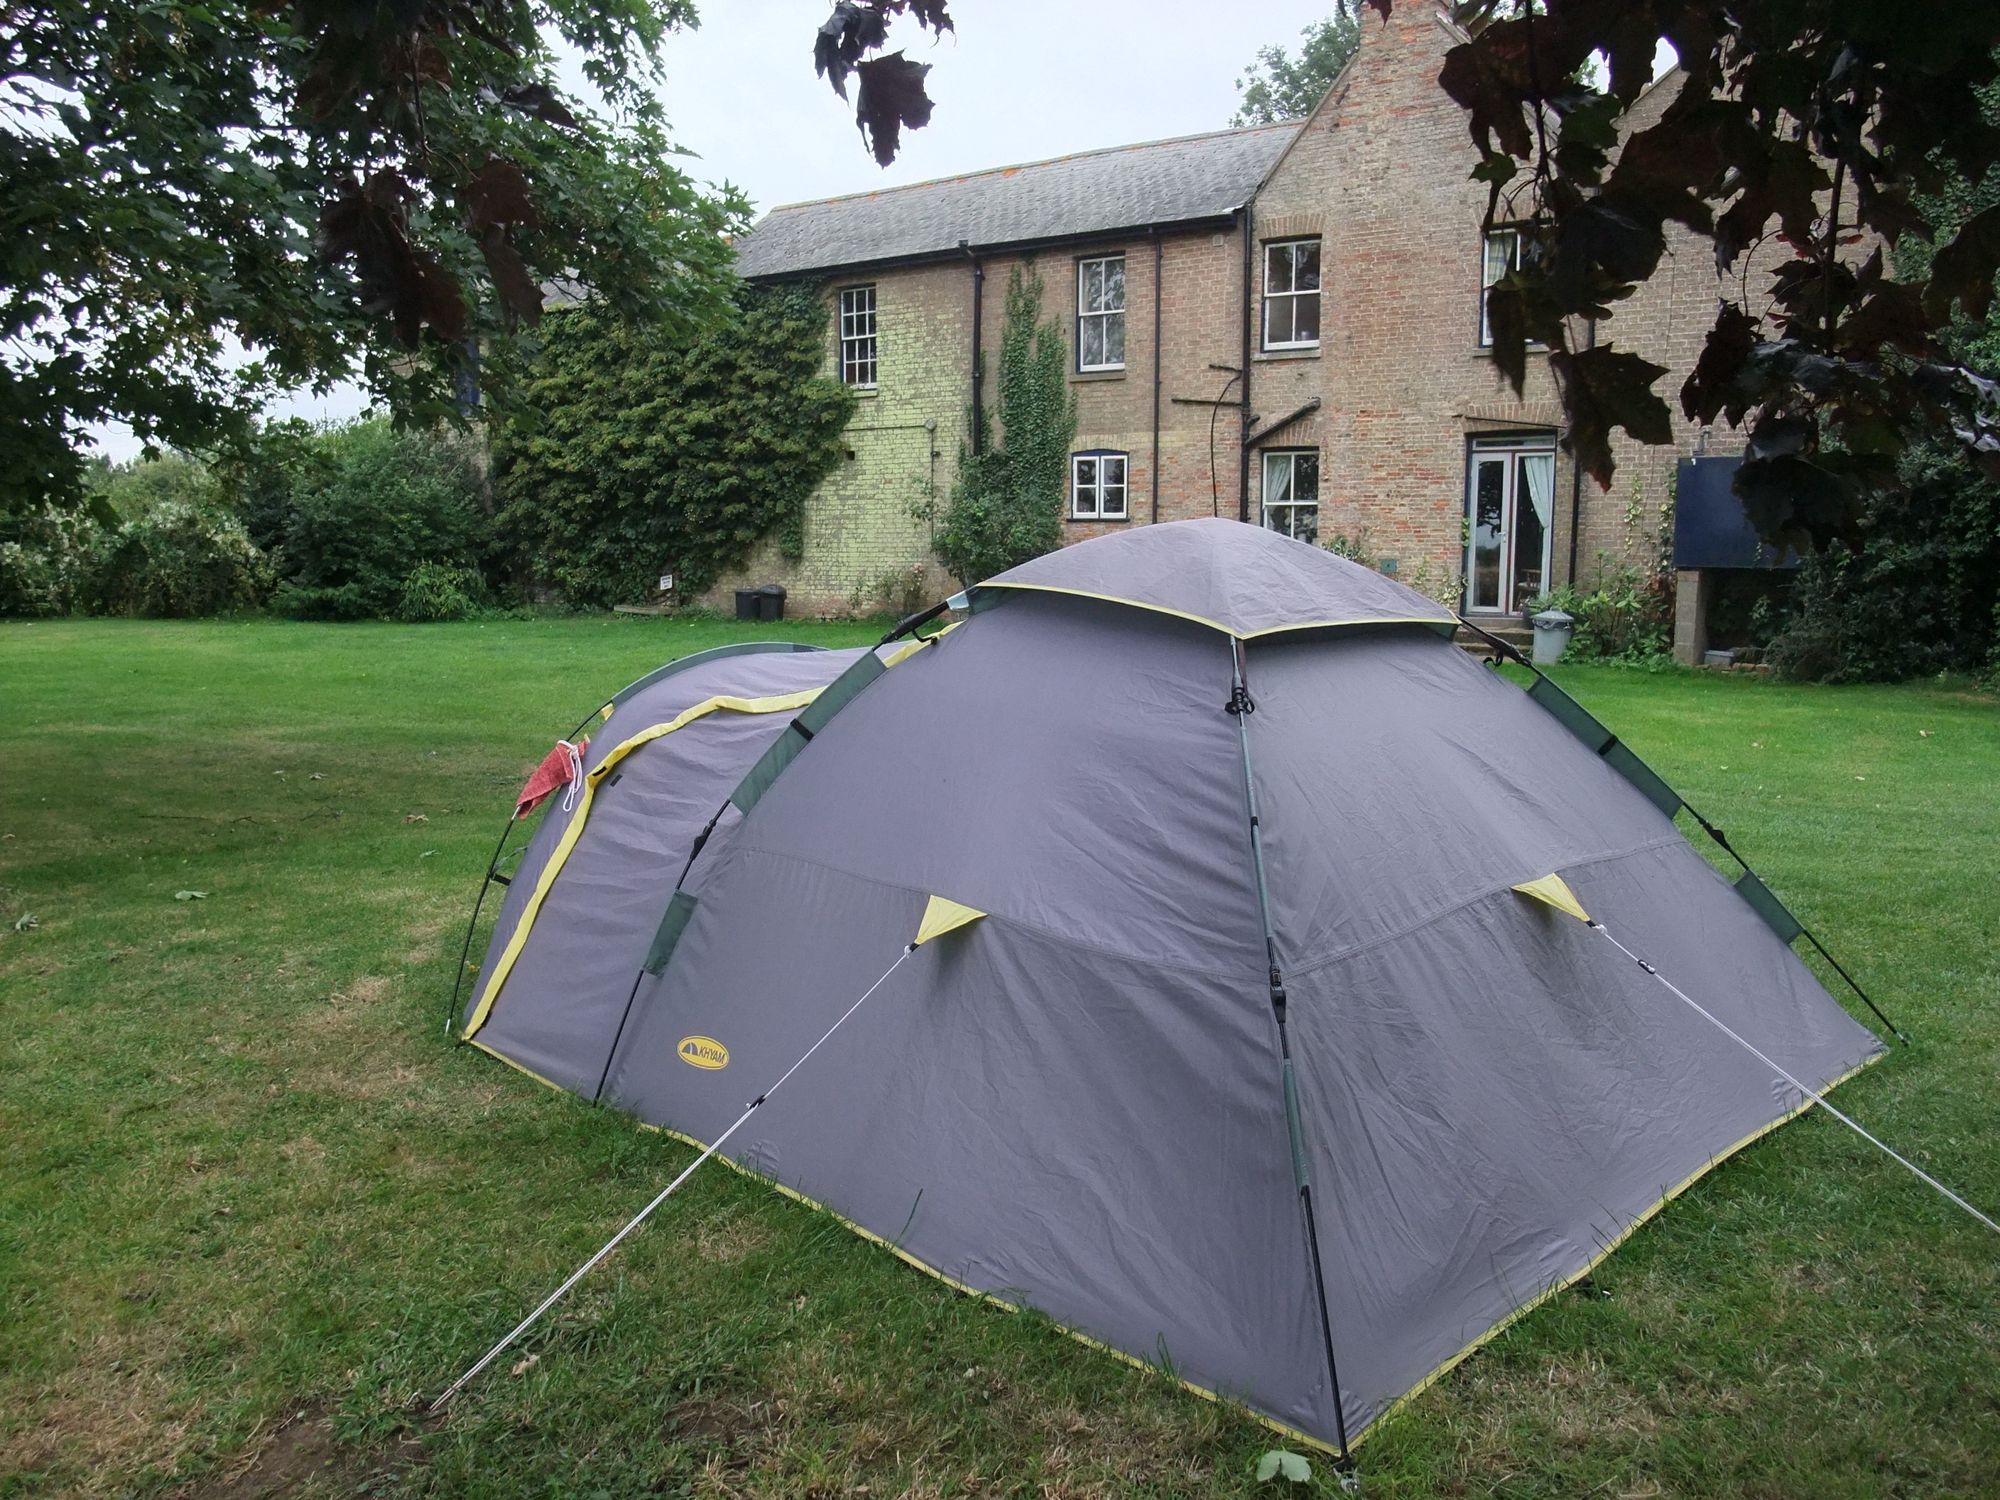 Camping In Your Back Garden 5 Reasons To Get The Tent Out